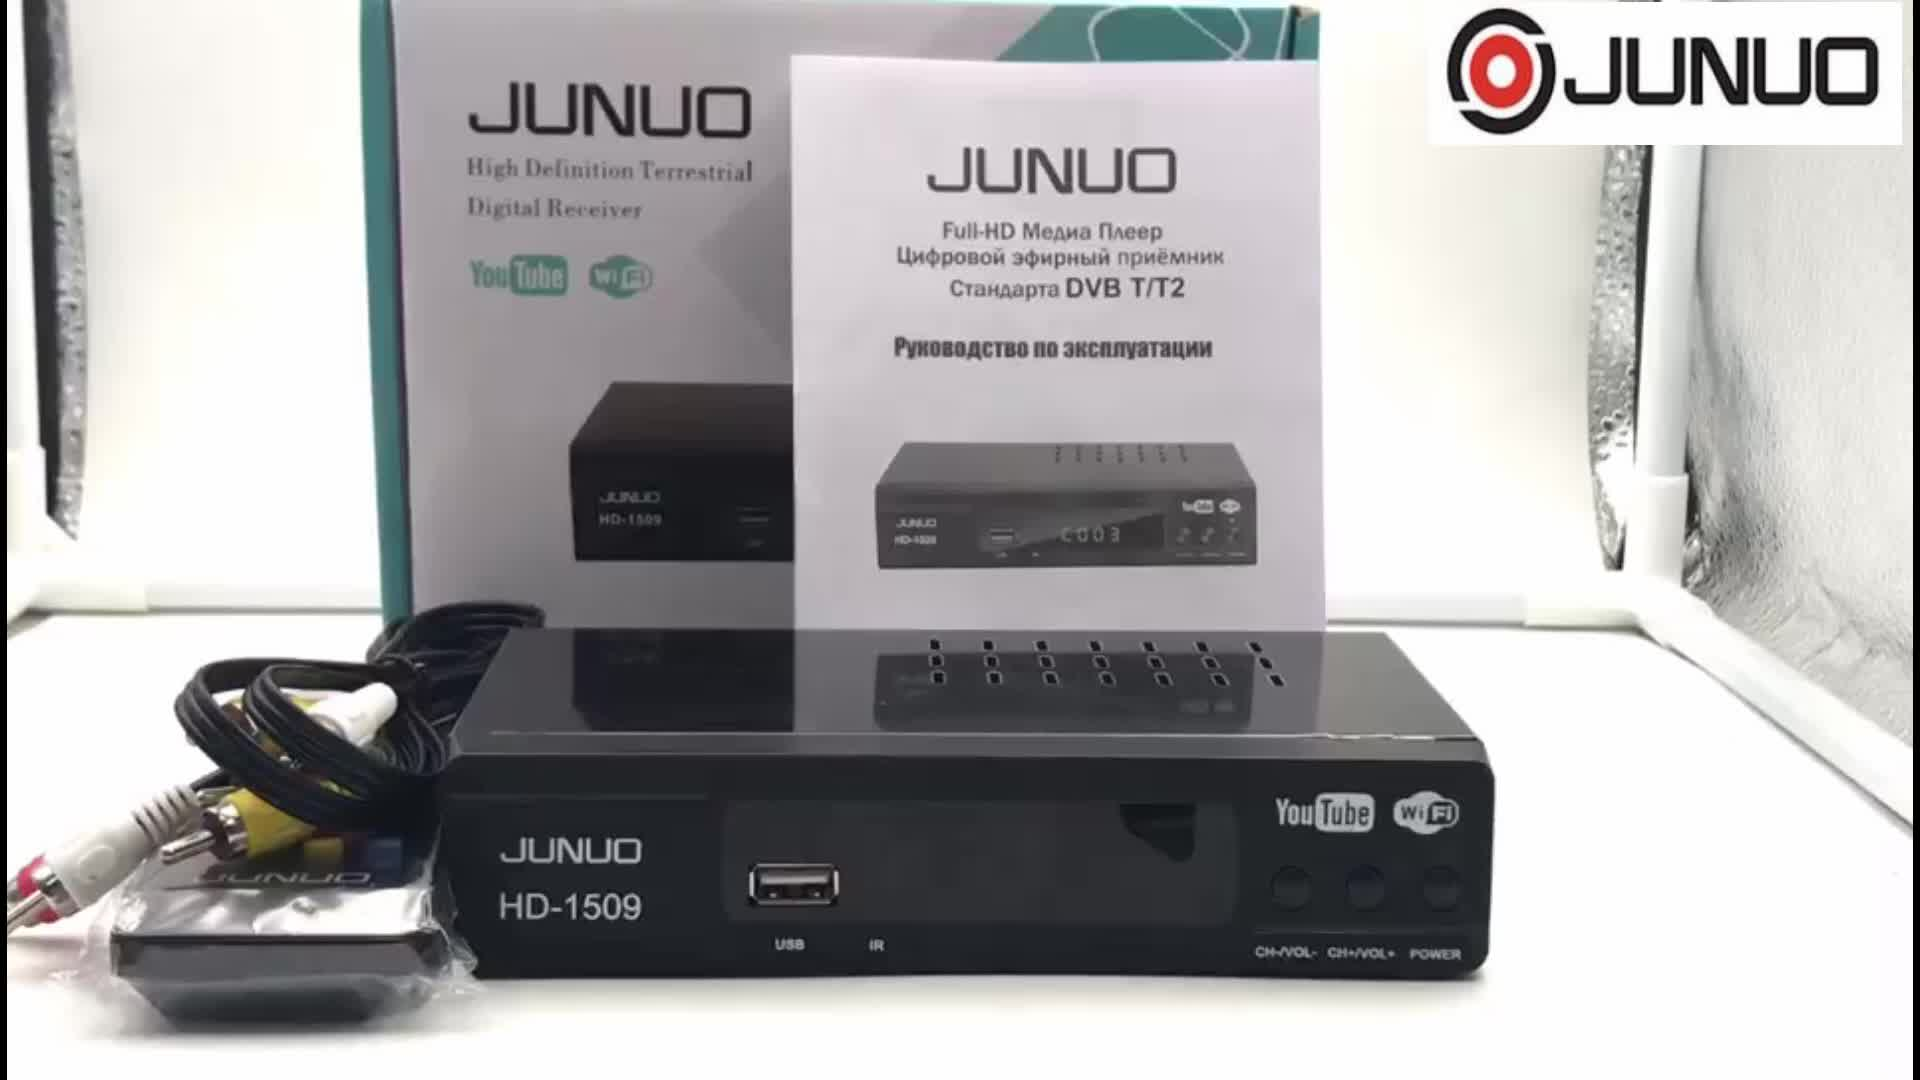 junuo professional set top box firmware upgrade dvb t full hd 1080p dvb t2 set top box ghana Uzbekistan